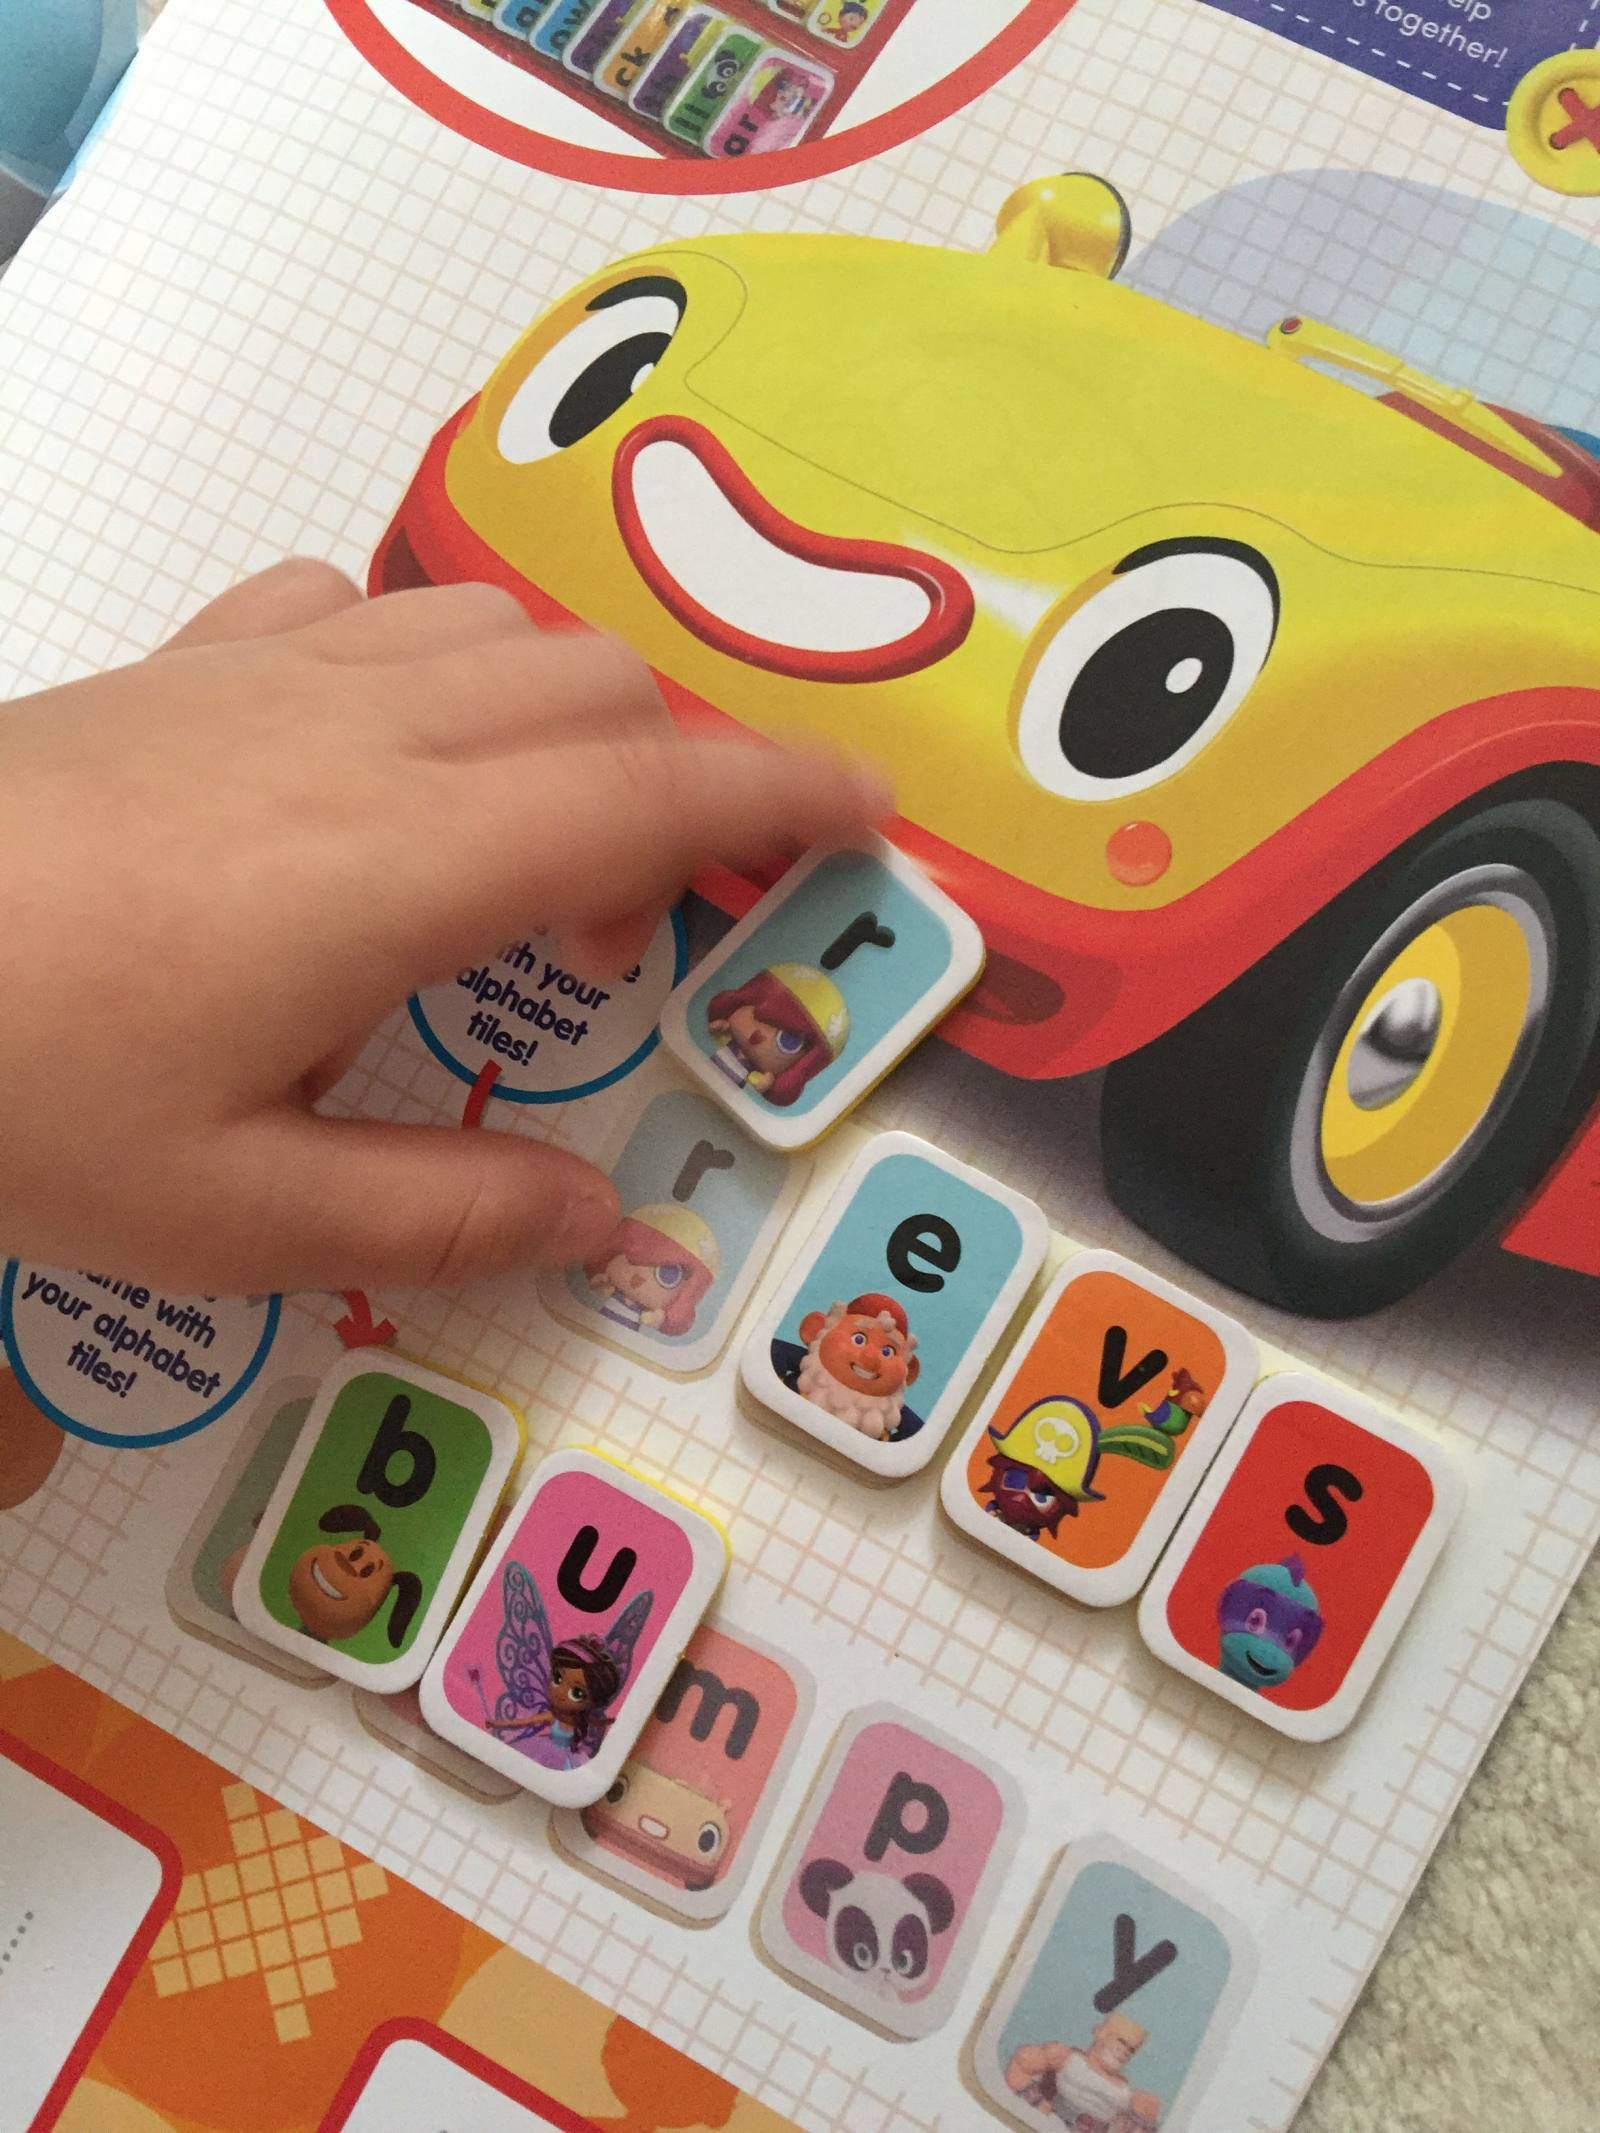 using the free gift alphabet tiles with Noddy magazine